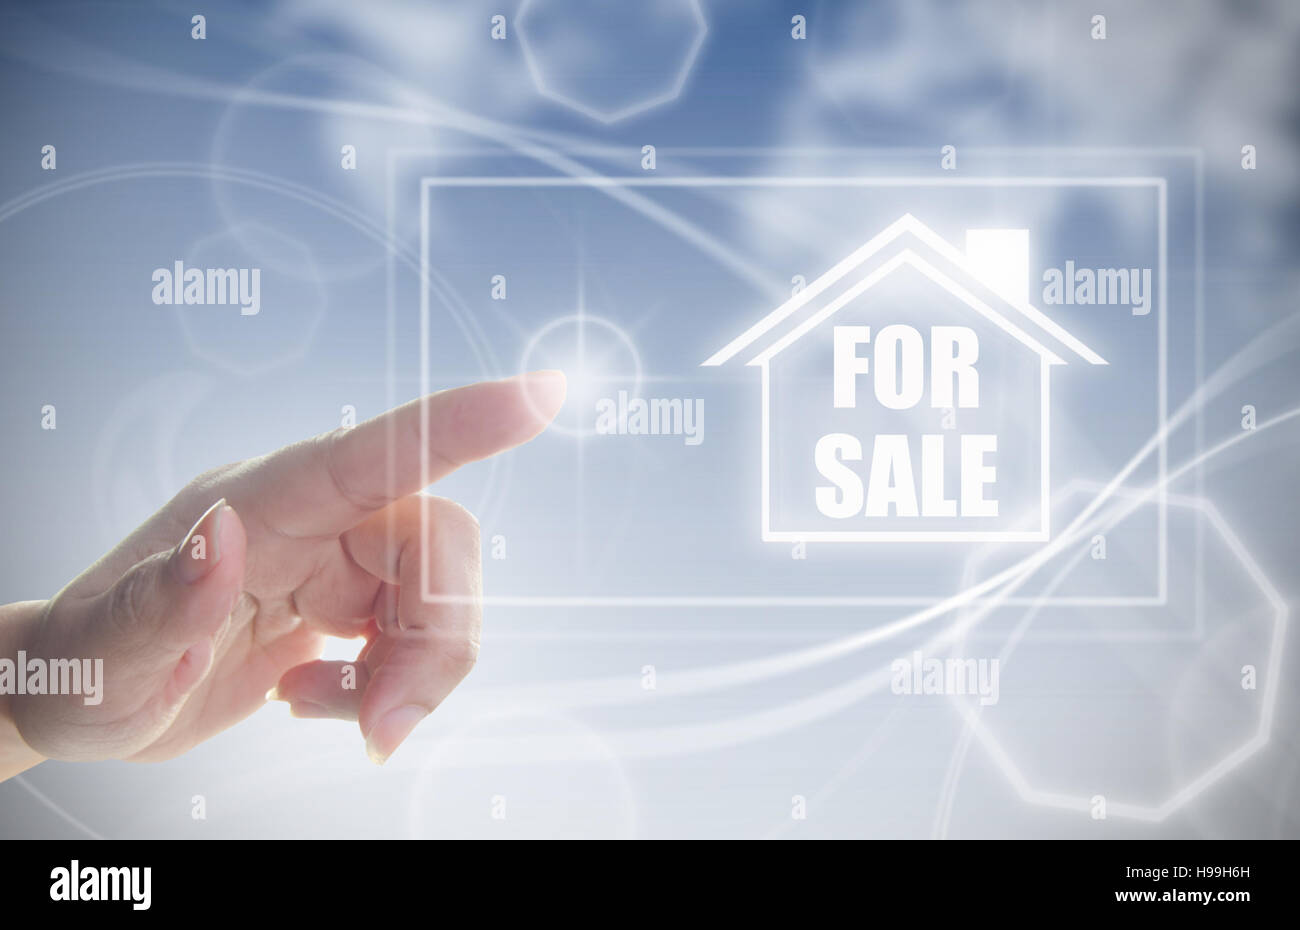 Property real estate for sale concept - Stock Image